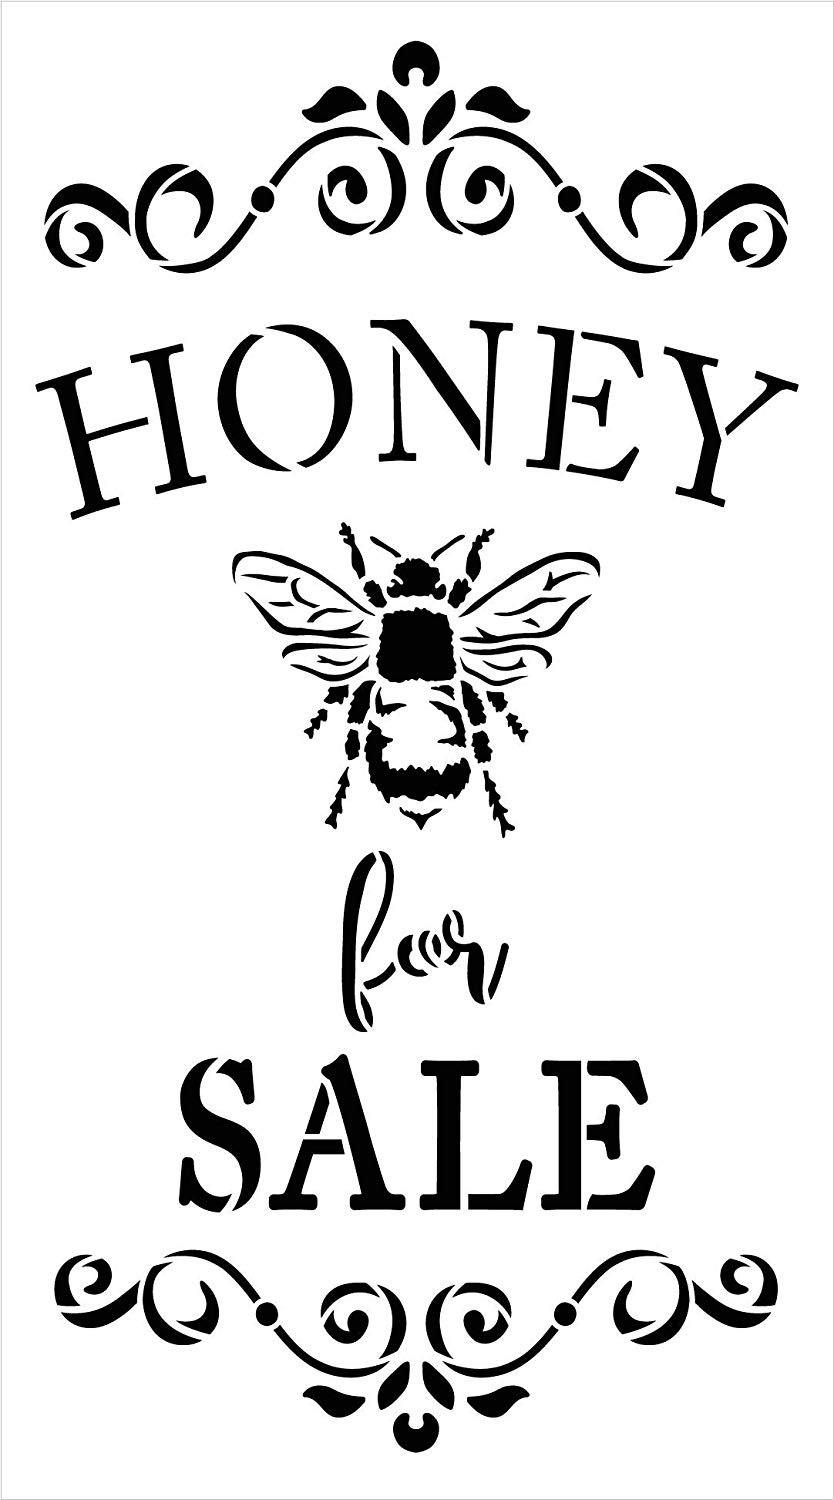 Honey for Sale Stencil with Bee by StudioR12 | DIY Spring Farmhouse Kitchen Home Decor | Rustic Embellished Word Art | Craft & Paint Wood Signs | Reusable Mylar Template | Select Size